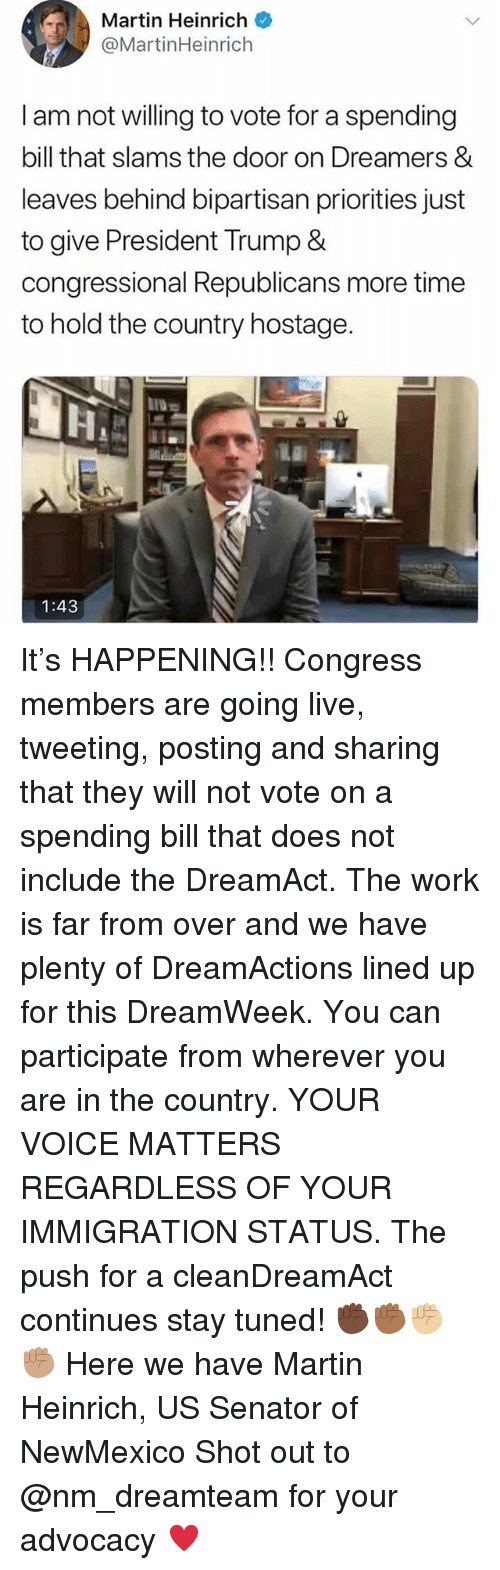 Martin, Memes, and Work: Martin Heinrich  @MartinHeinrich  I am not willing to vote for a spending  bill that slams the door on Dreamers &  leaves behind bipartisan priorities just  to give President Trump &  congressional Republicans more time  to hold the country hostage  1:43 It's HAPPENING!! Congress members are going live, tweeting, posting and sharing that they will not vote on a spending bill that does not include the DreamAct. The work is far from over and we have plenty of DreamActions lined up for this DreamWeek. You can participate from wherever you are in the country. YOUR VOICE MATTERS REGARDLESS OF YOUR IMMIGRATION STATUS. The push for a cleanDreamAct continues stay tuned! ✊🏿✊🏾✊🏼✊🏽 Here we have Martin Heinrich, US Senator of NewMexico Shot out to @nm_dreamteam for your advocacy ♥️